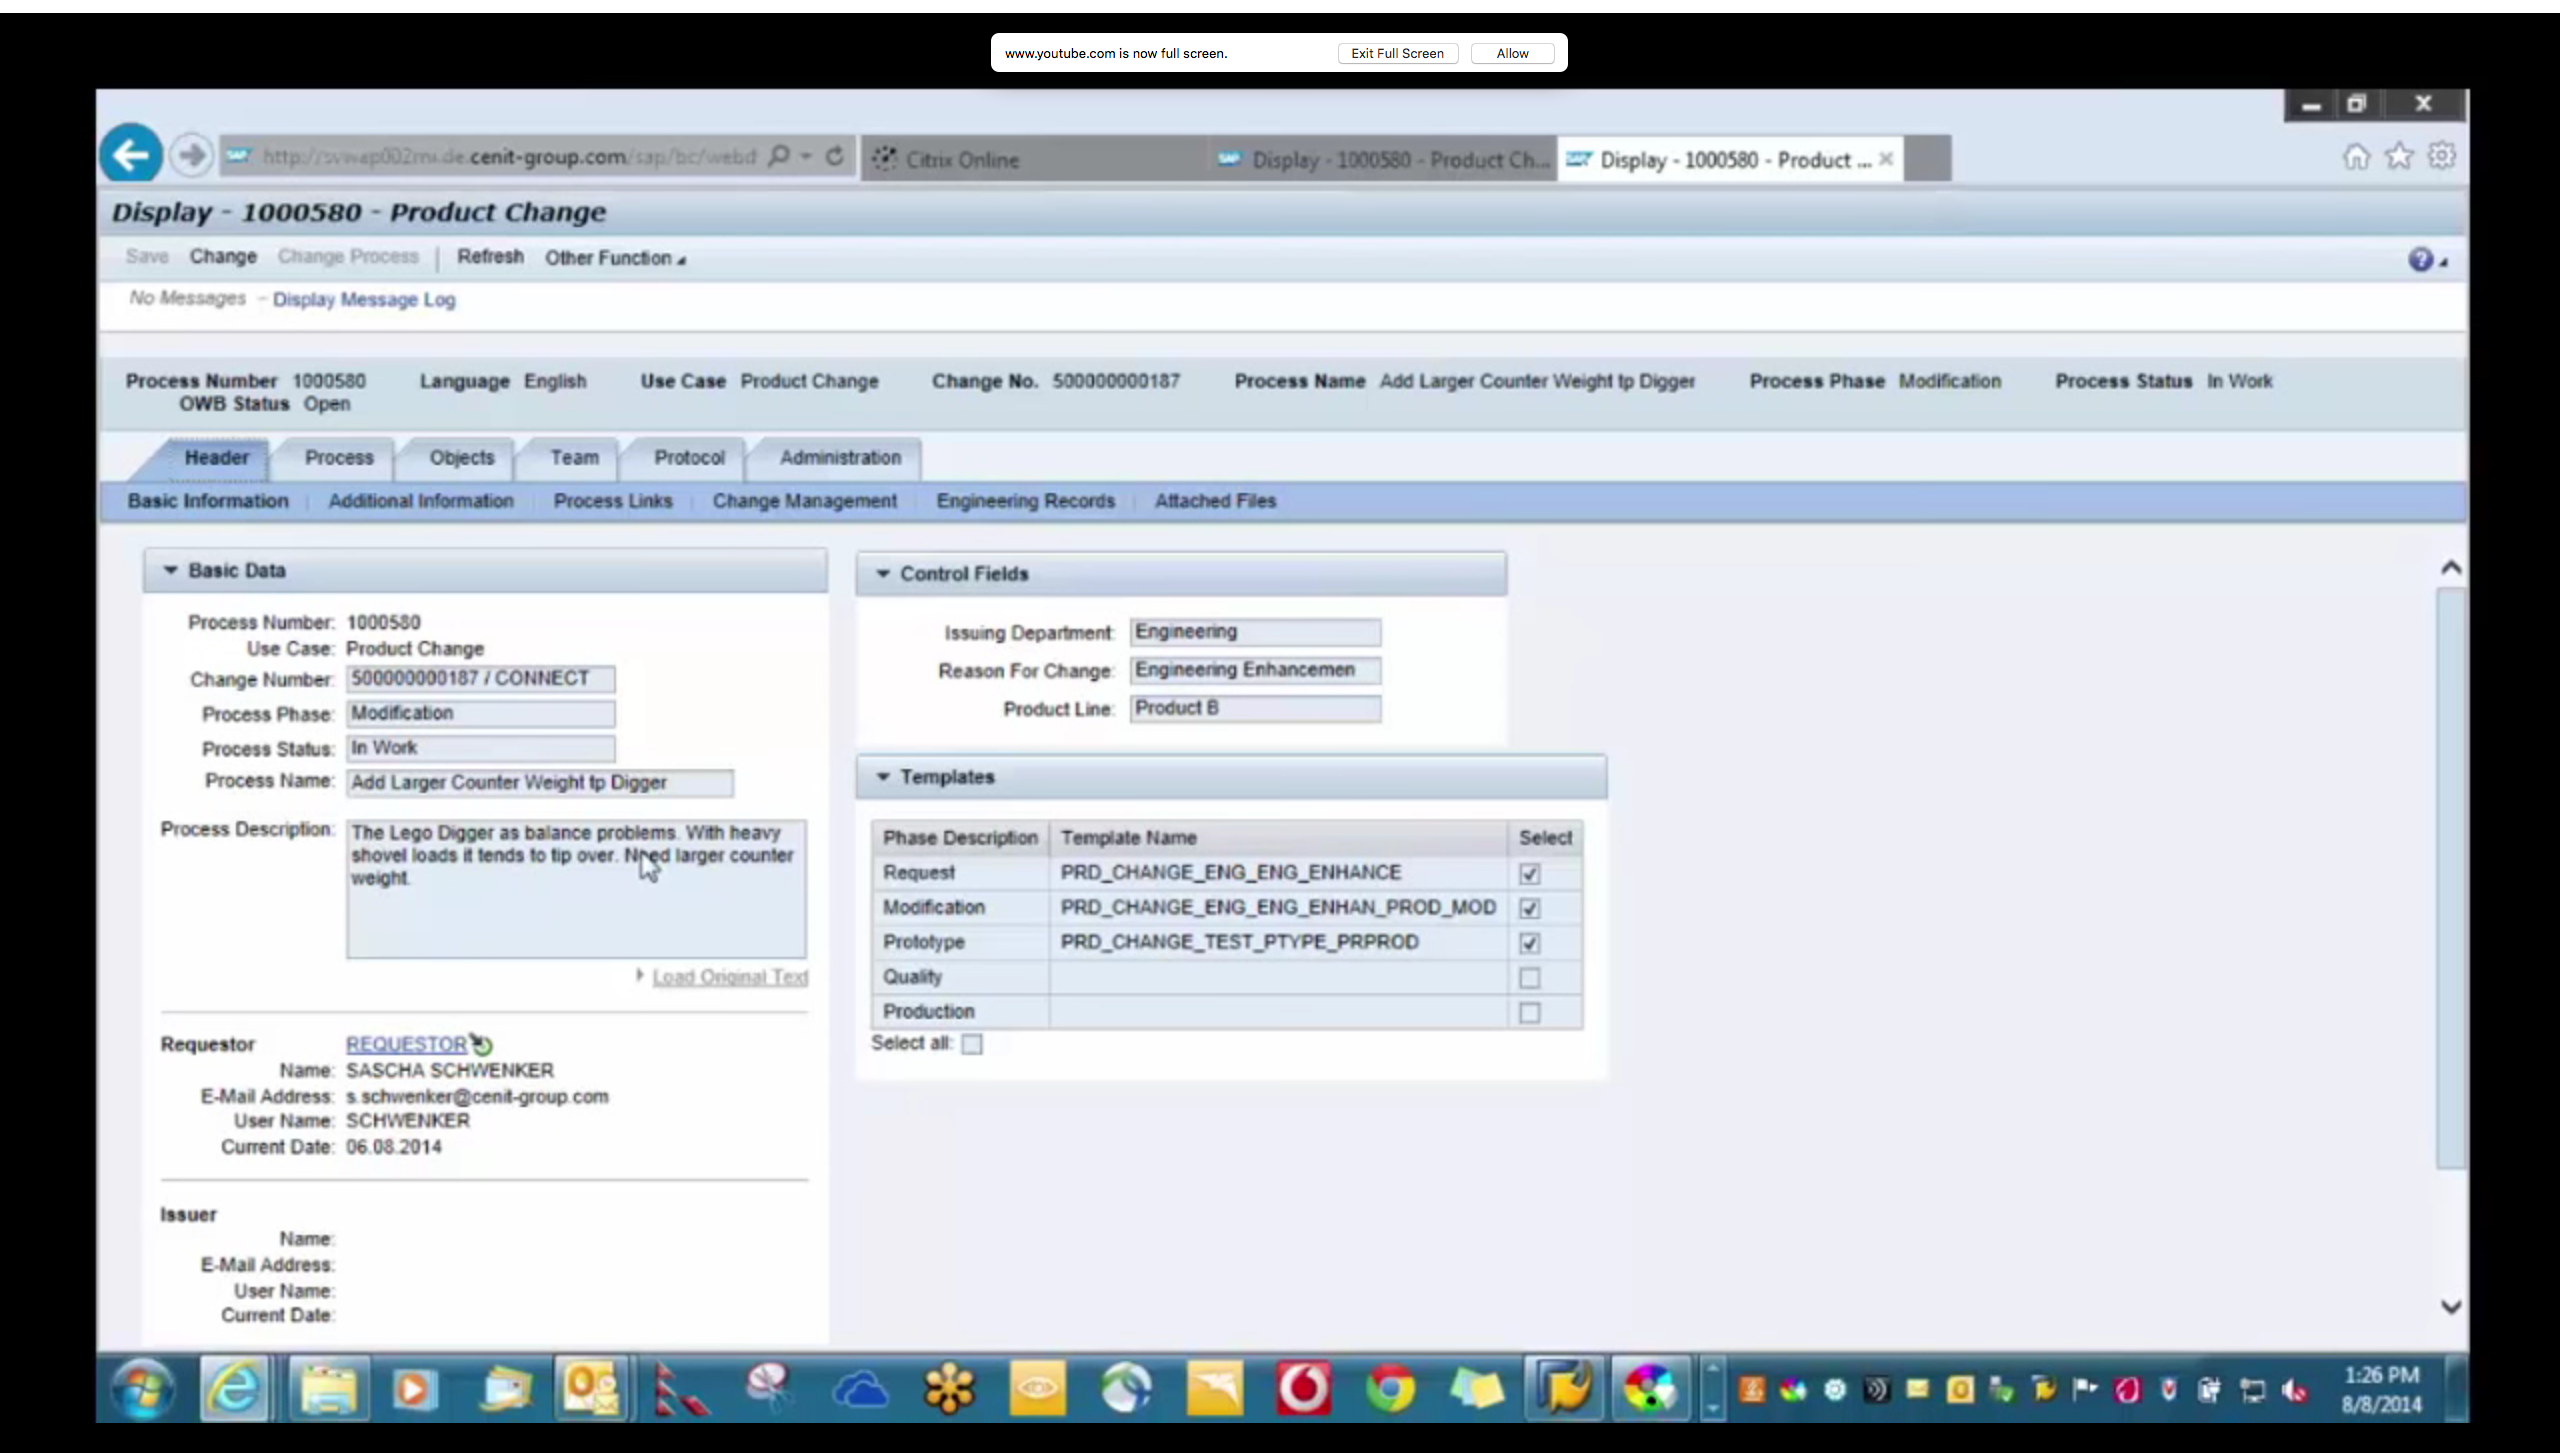 SAP PLM Demo - SAP+PLM+Screen+Shot+1.png